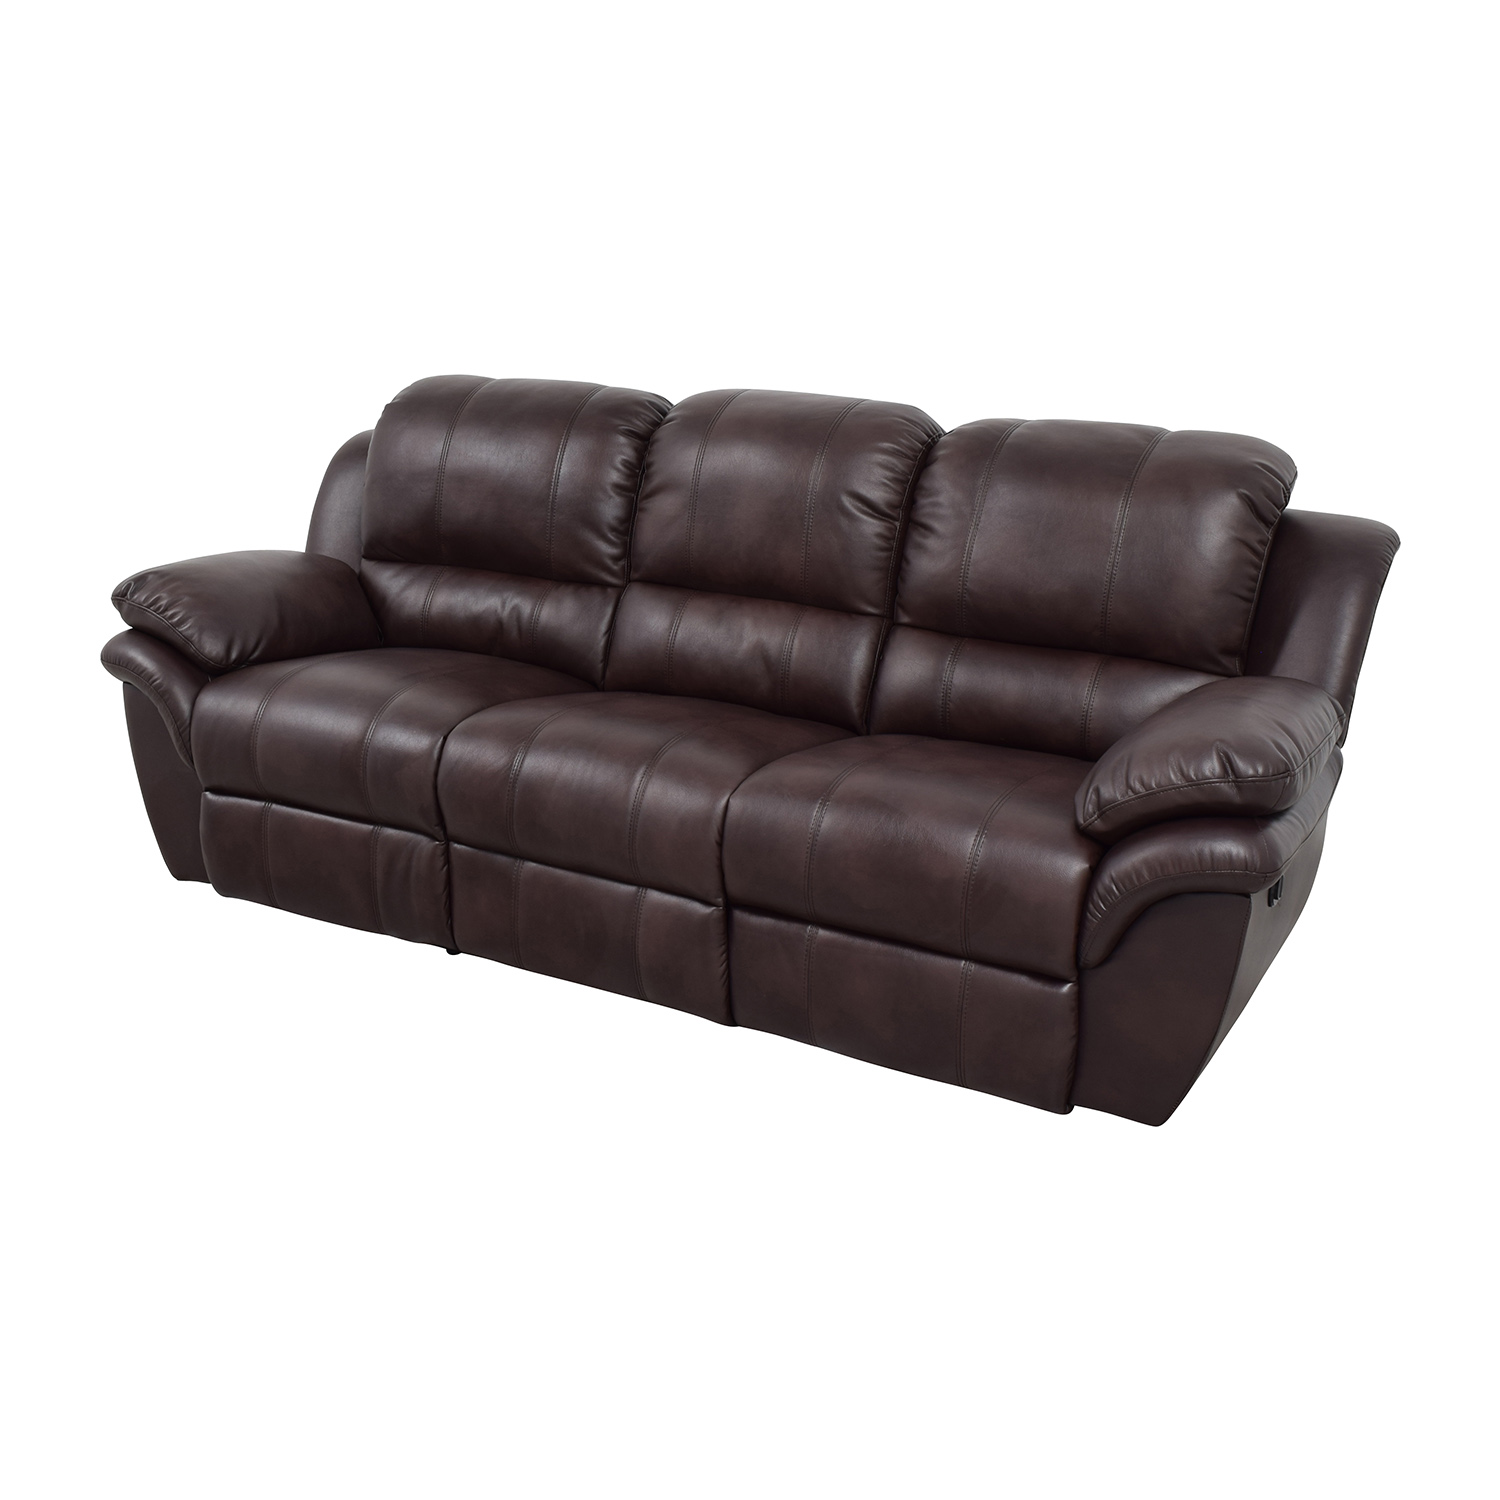 New Classic Home Furnishing New Classic Home Furnishing Leather Reclining Brown Couch Brown